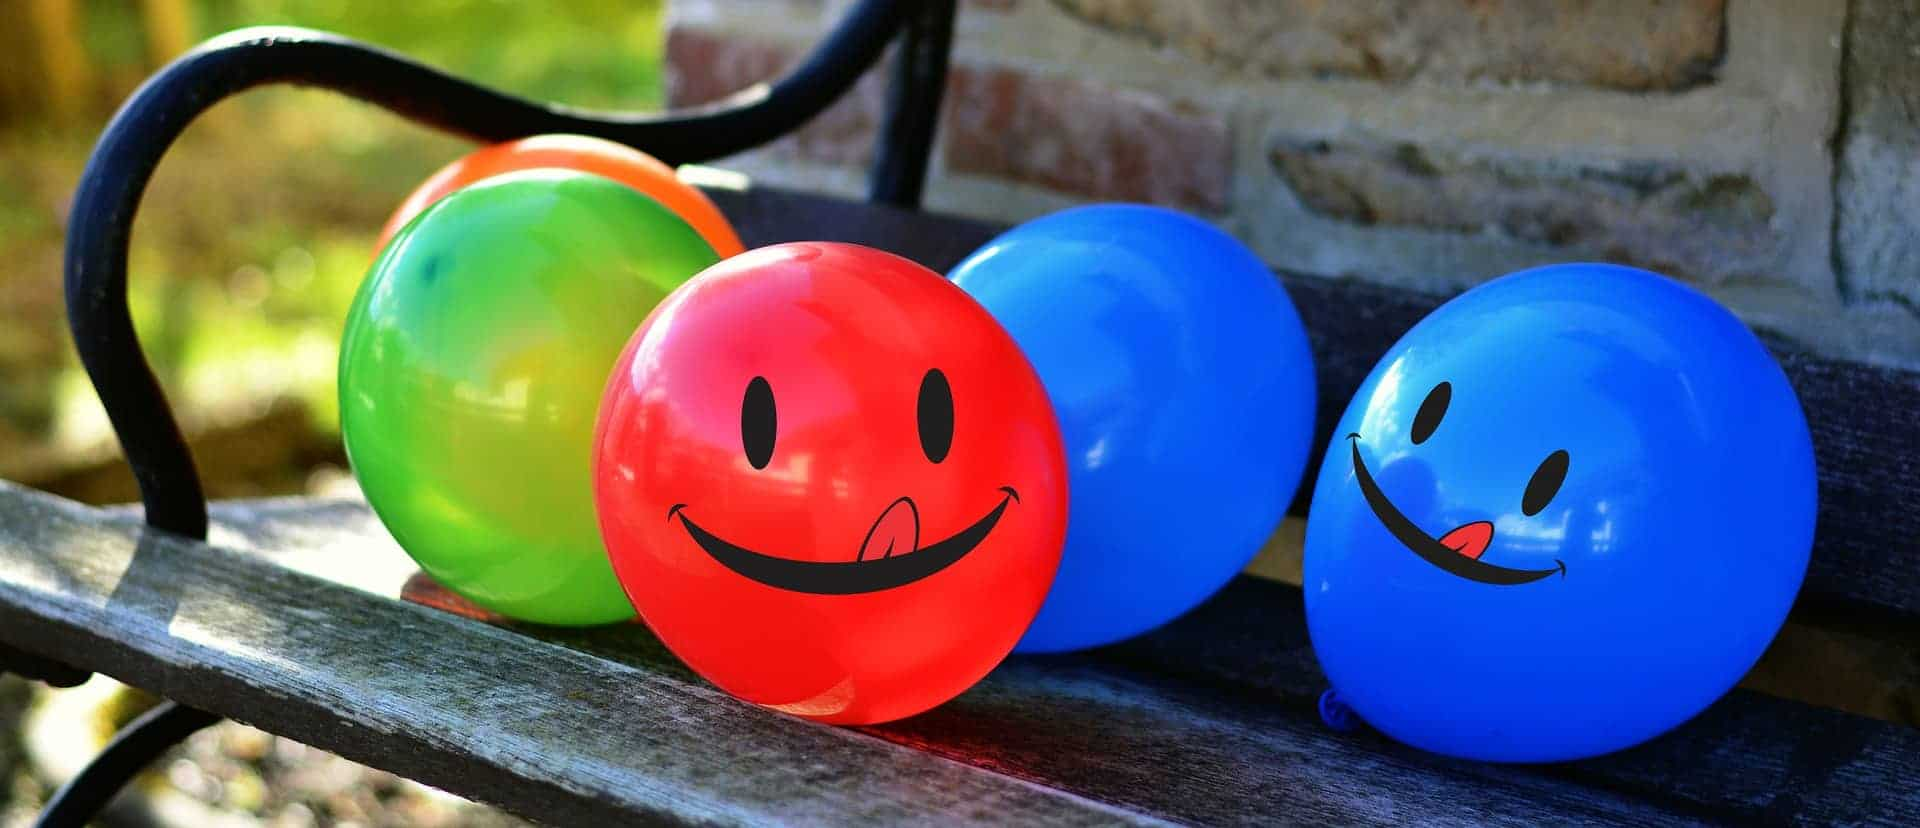 8 Reasons to Use Promotional Balloons To Boost Business - CSA Balloons